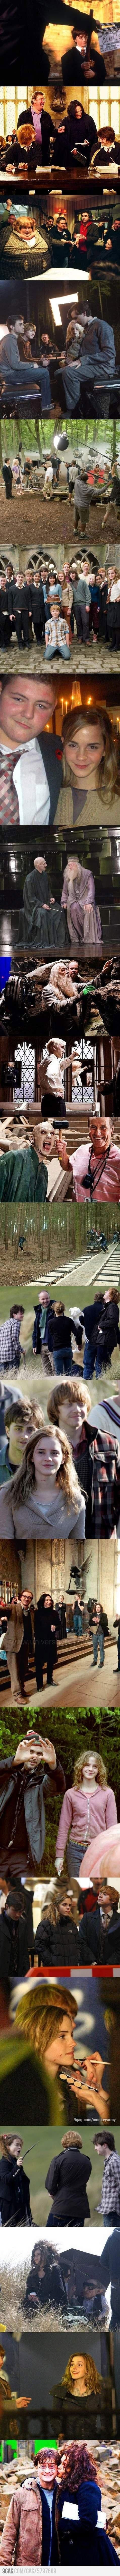 Potter film pictures!